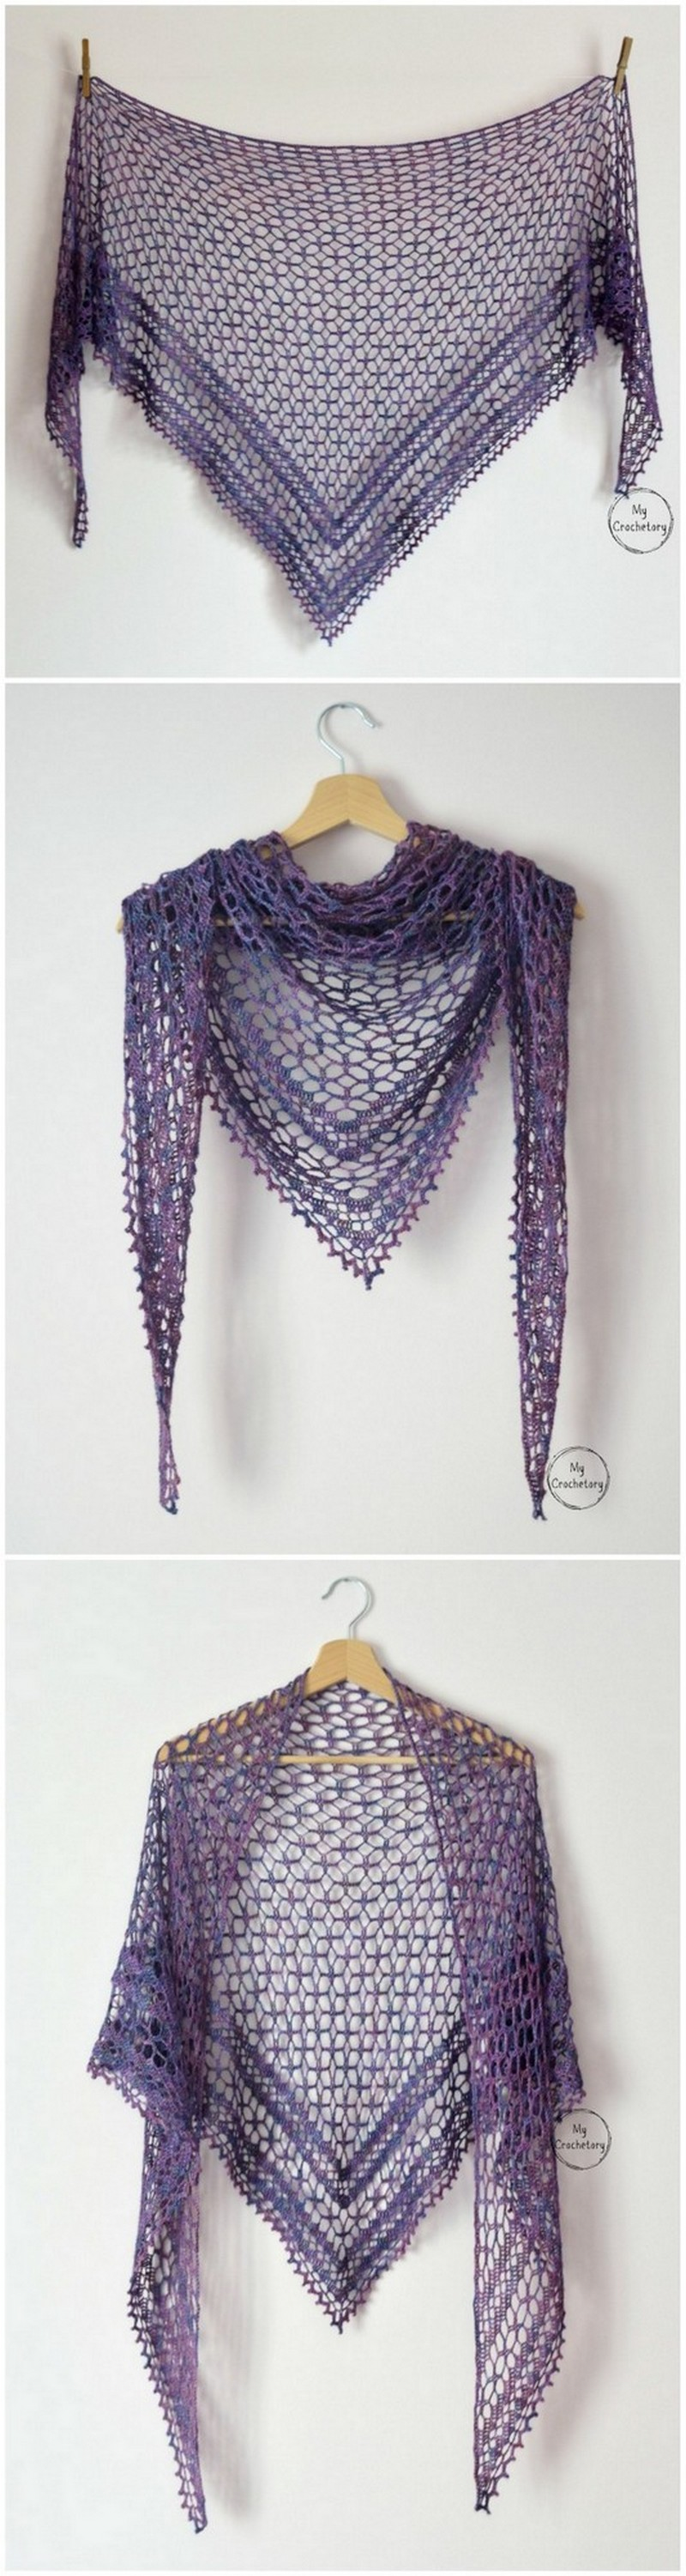 Crochet Shawl Pattern (14)